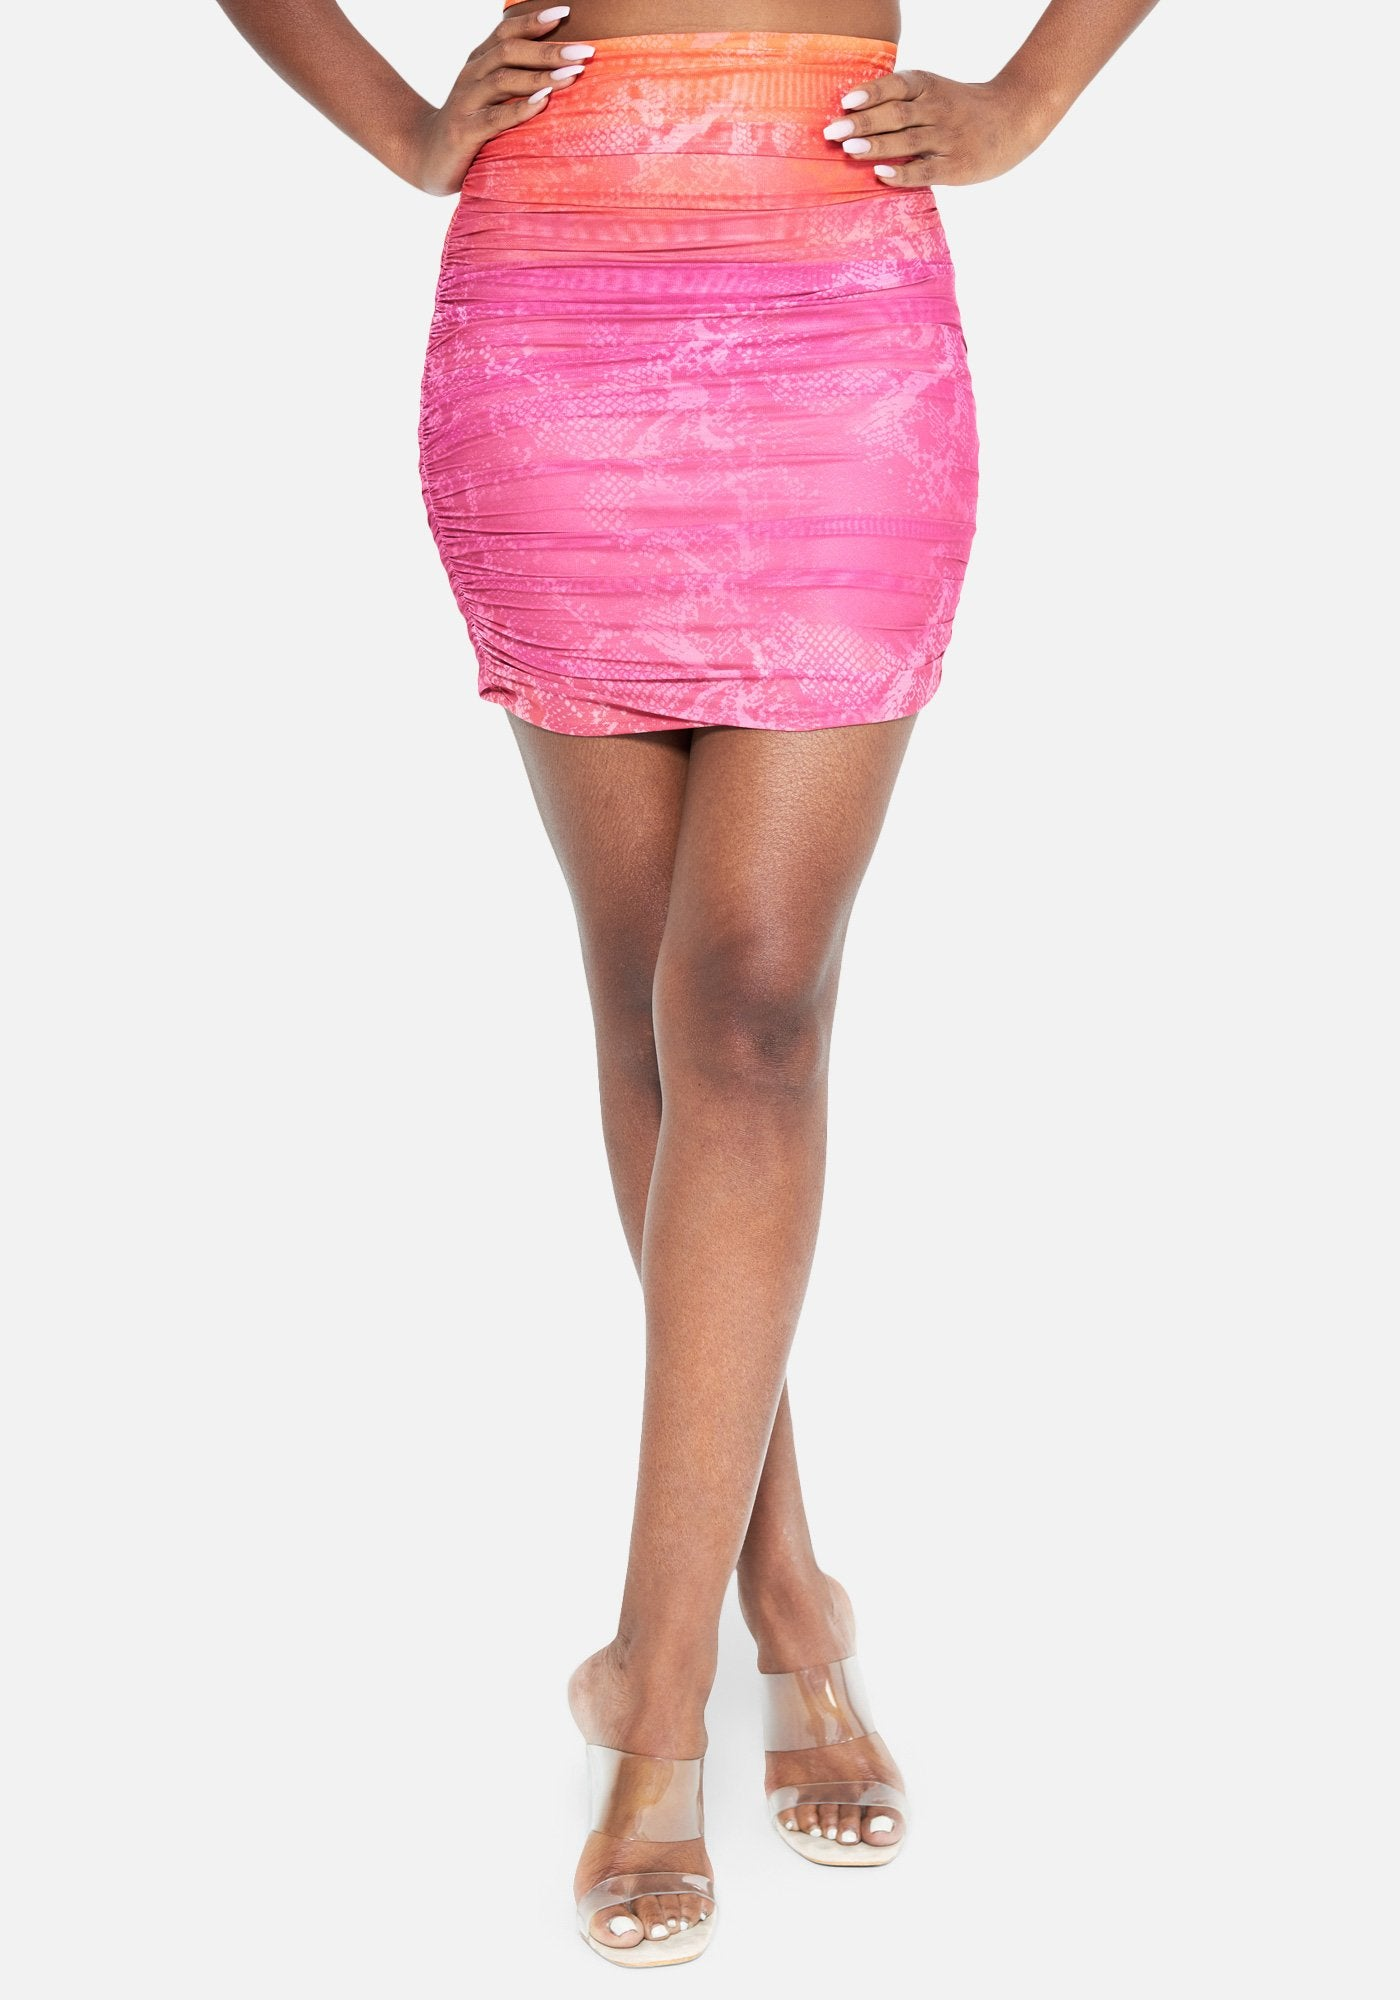 Bebe Women's Eden Printed Ruched Mesh Skirt, Size XXS in Sunset Ombre Spandex